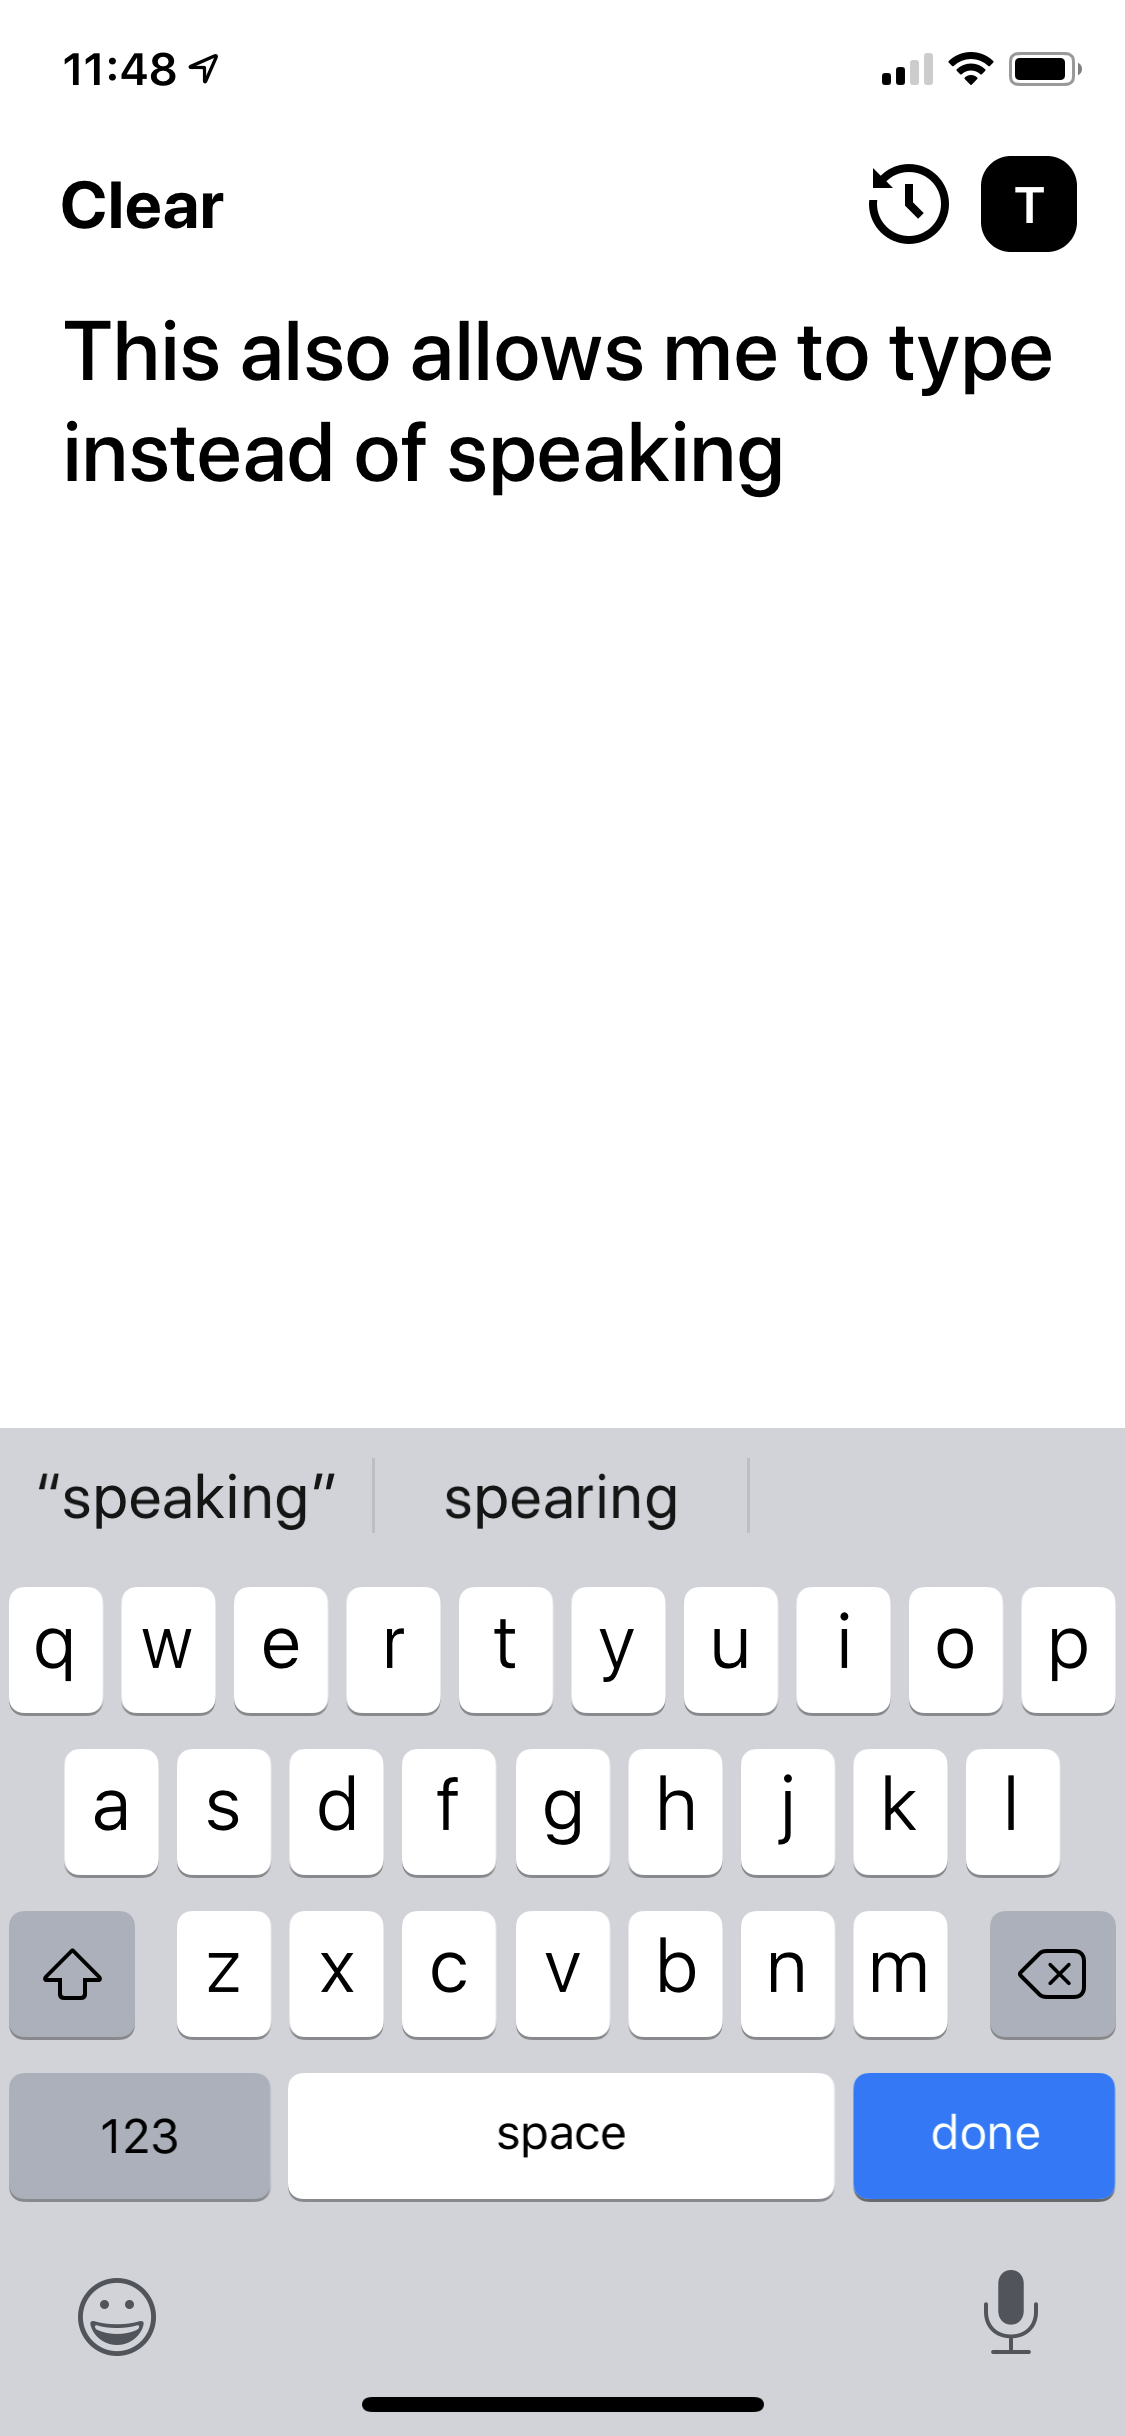 An example of using the keyboard for input instead of speech.